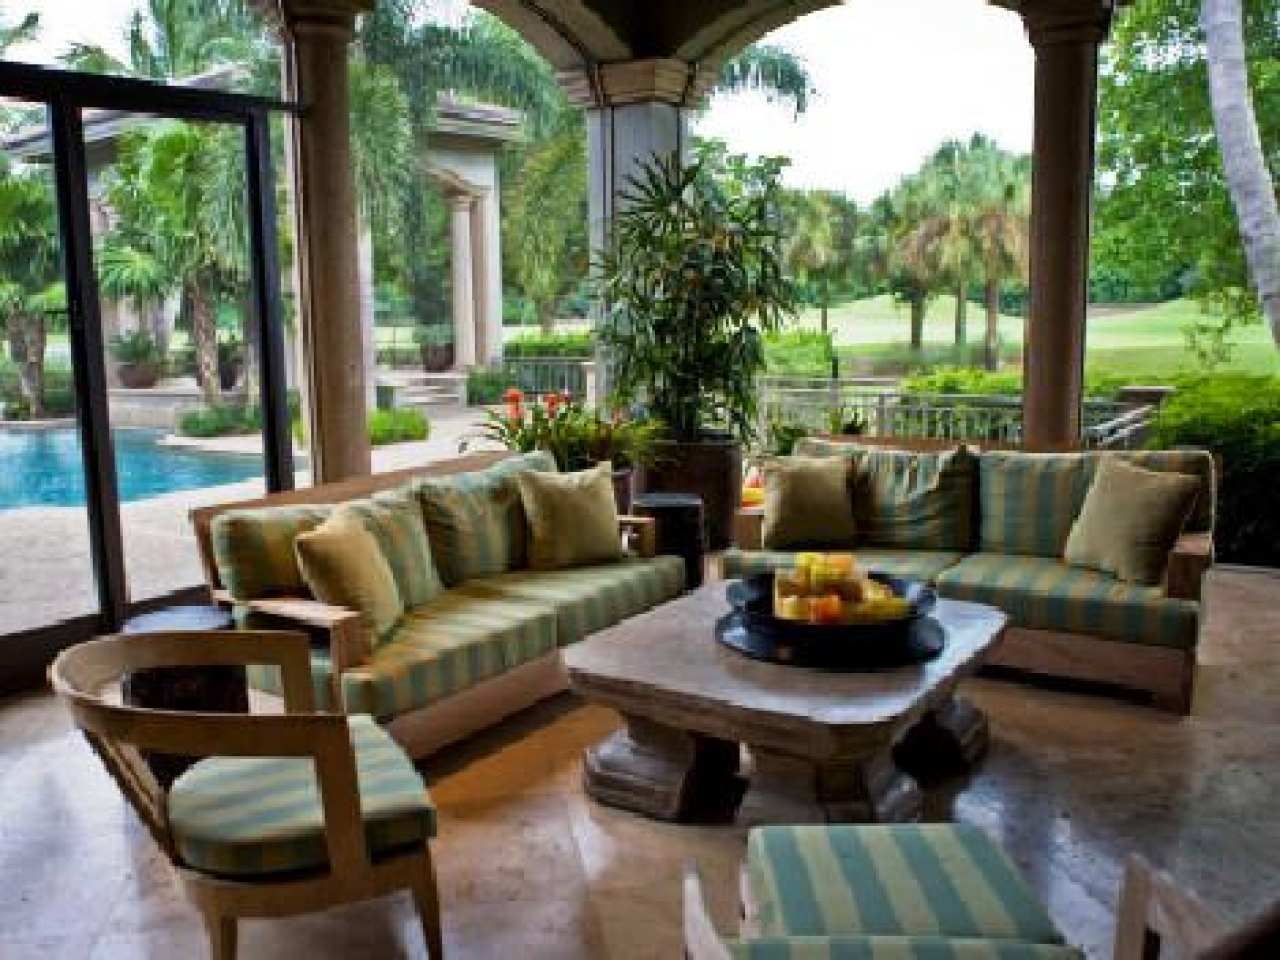 Charmant Outdoor Covered Porch Ideas Lanai Patio Decorating Ideas Florida With  Regard To Size 1280 X 960